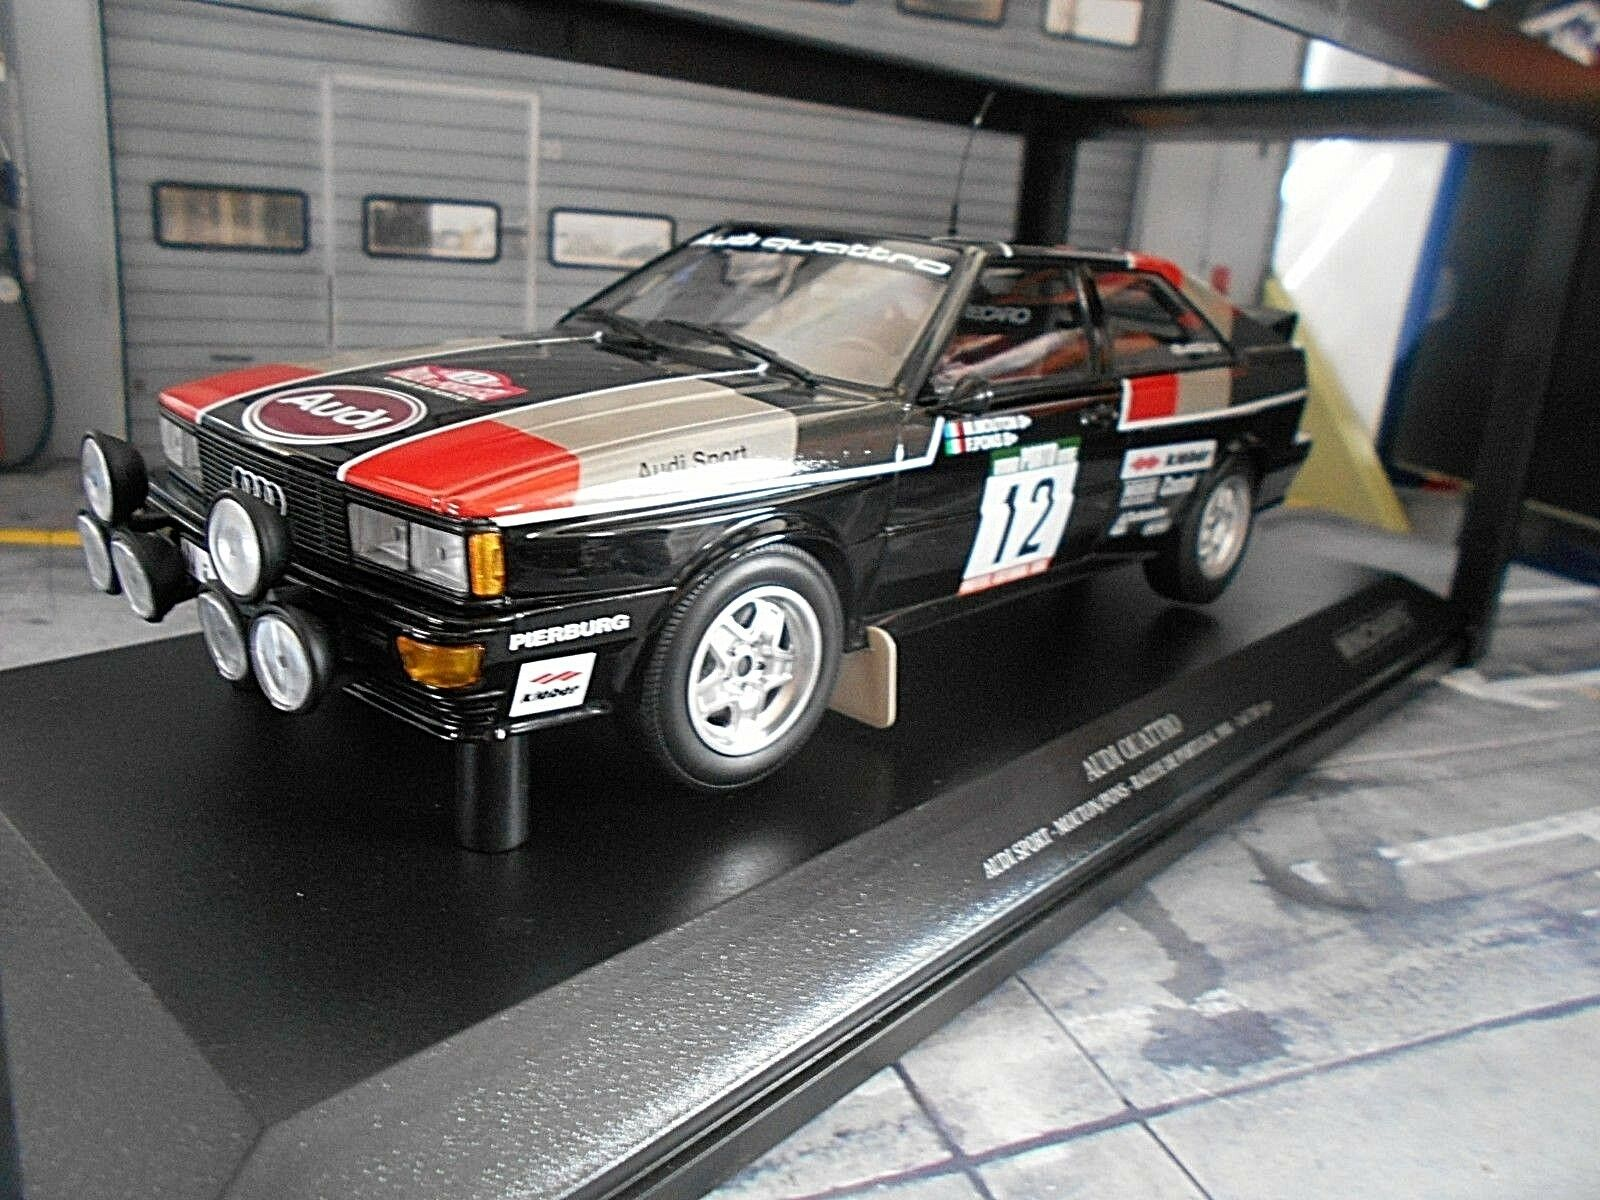 Audi Quattro Rally Size 4 Portugal TAP 1981 Mouton Pons New Minichamps 1 18